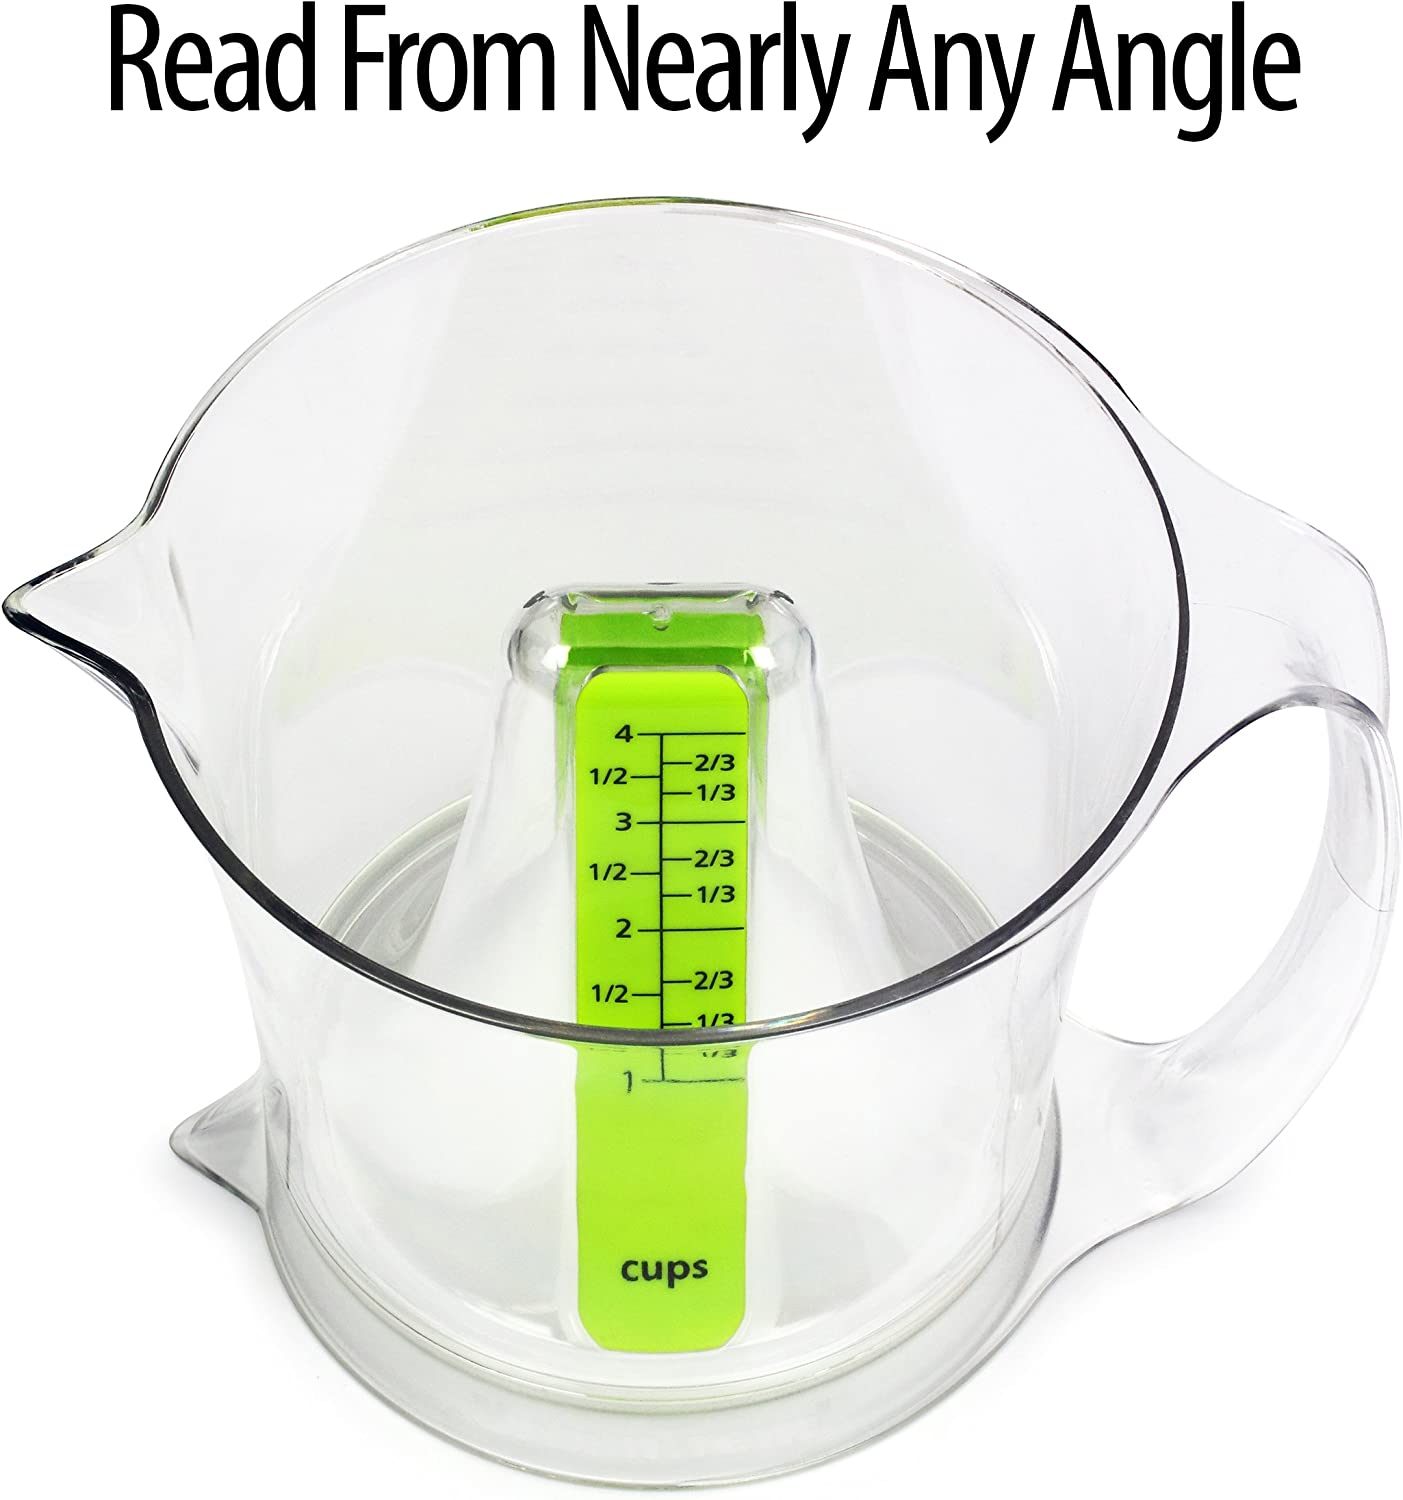 Urban Trend Reverso Primo Measuring Cup And Spoon Set 4 And 1 Cup Patented Easy To Read Design 2 In 1 Measuring Cups When Flipped Over Kitchen Dining Amazon Com